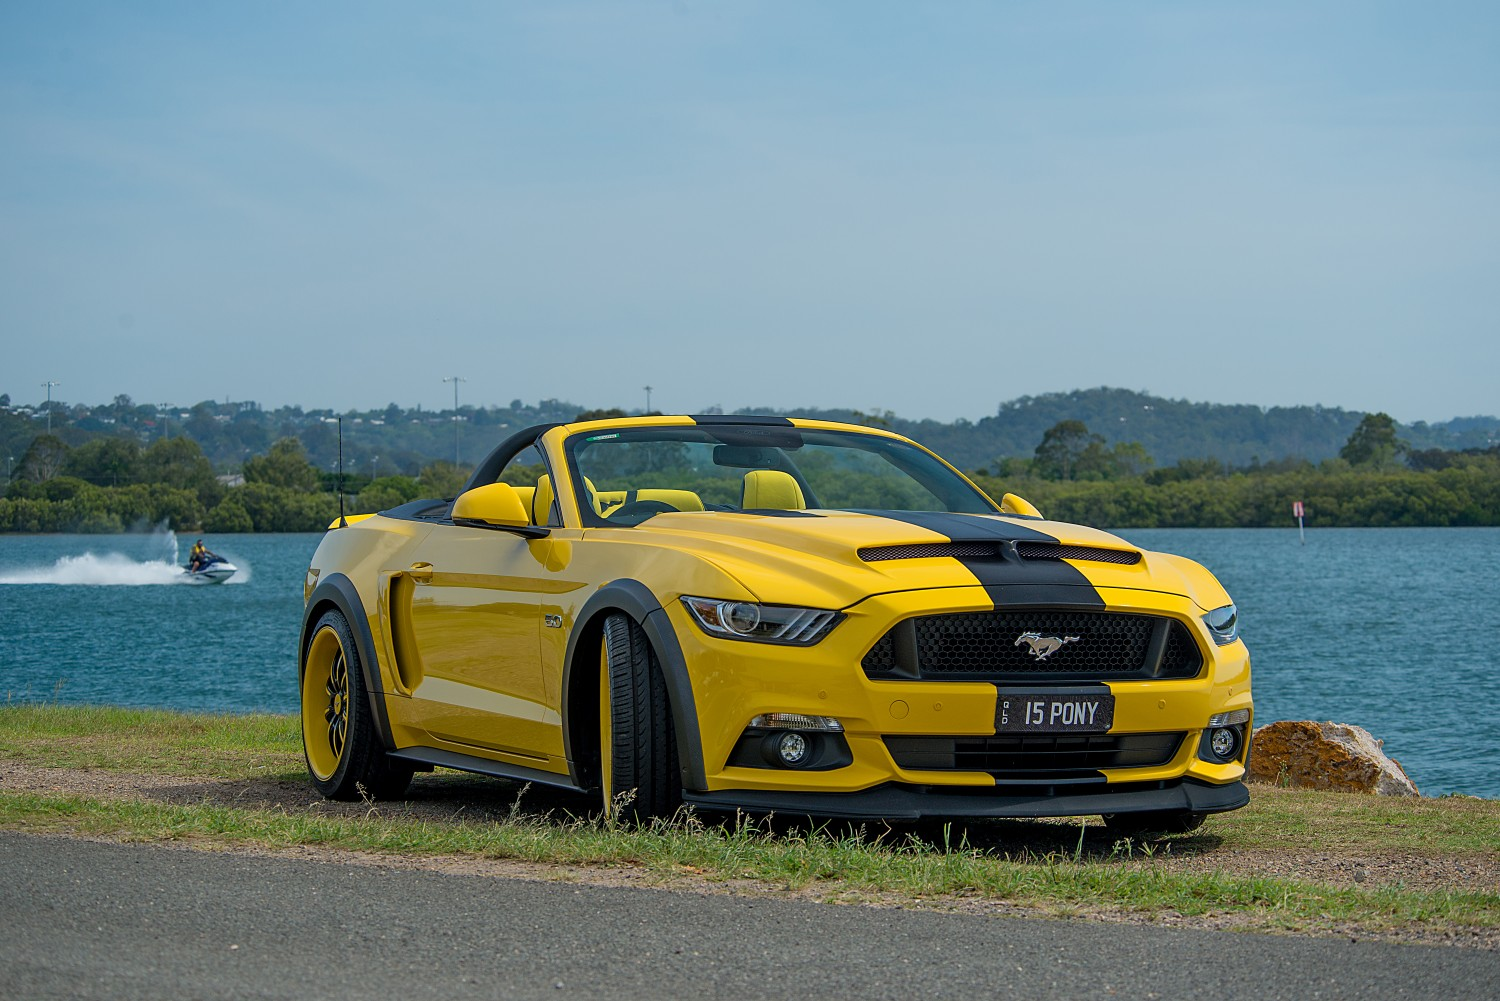 Roush Mustang Stage 2 >> 2016 Ford S550 Mustang GT - PonyParts - Shannons Club